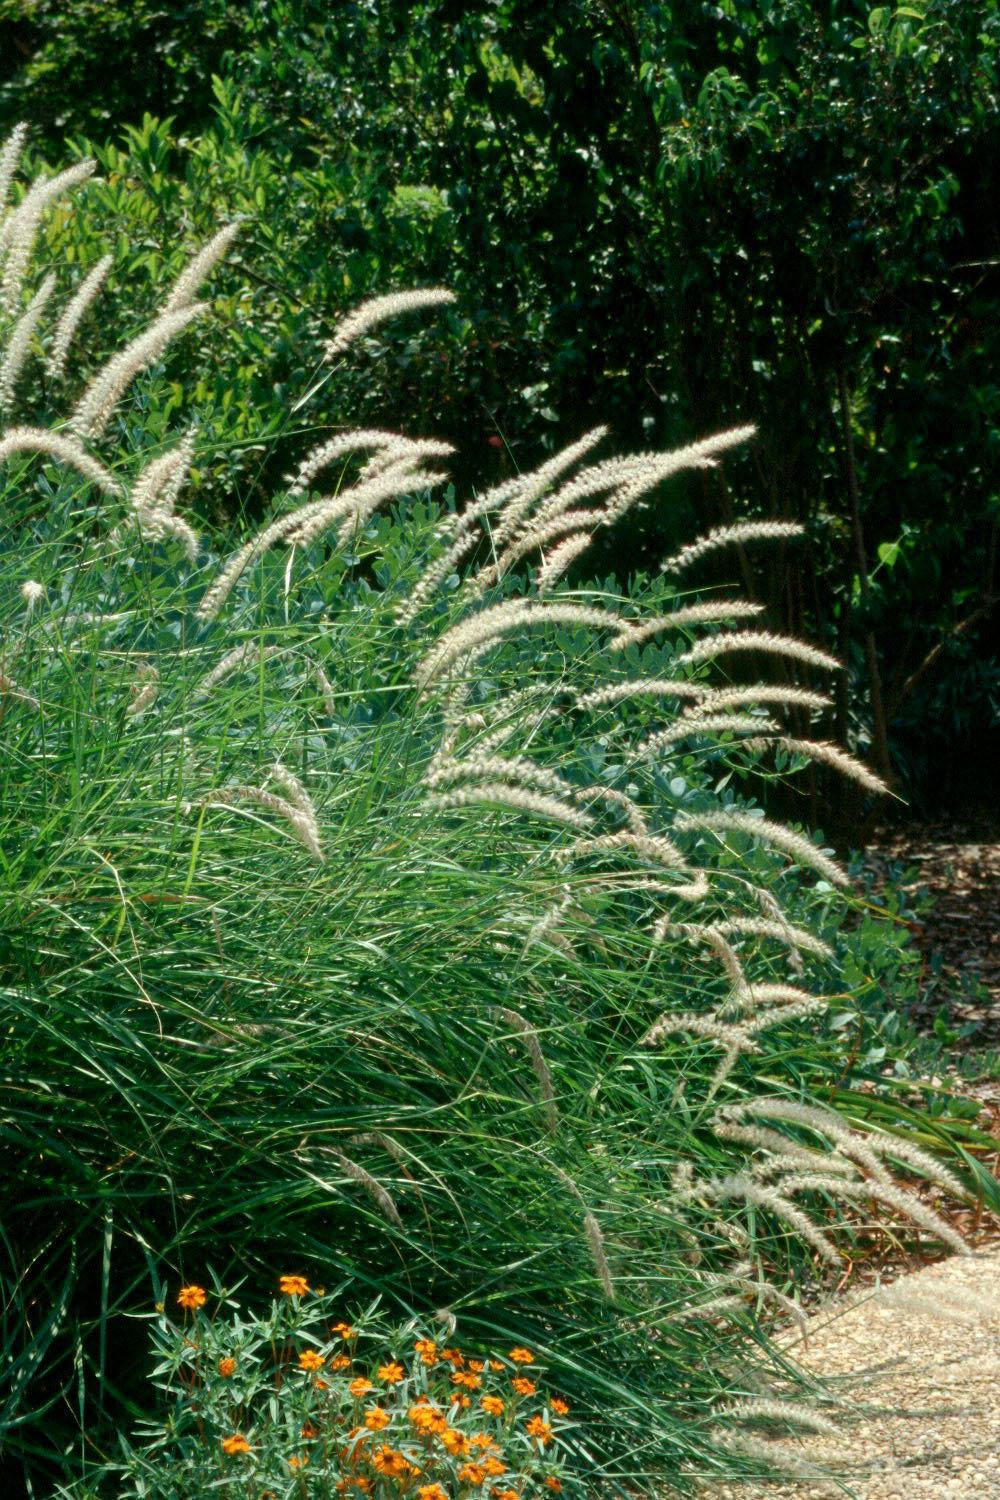 The oriental fountain grass is a 4-foot tall grass with pristine white blooms. It offers added excitement in the garden with its plumes that move in the wind. Ornamental fountain grasses add extra value when planted so they are back-lighted from the setting sun or landscape lighting.